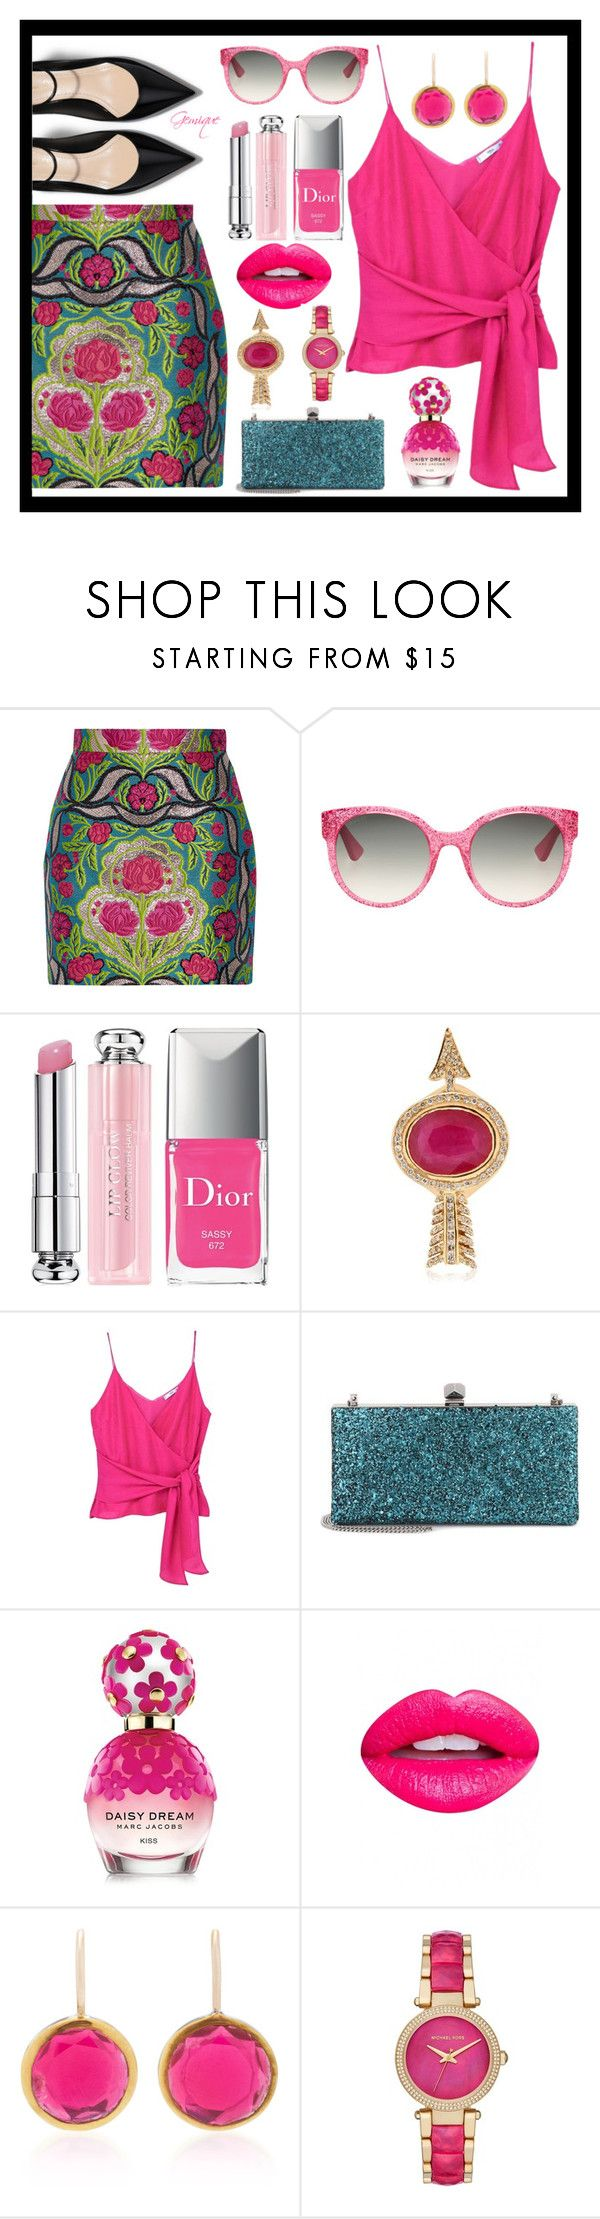 """""""Pink Roses"""" by gemique ❤ liked on Polyvore featuring Gucci, Christian Dior, Jade Jagger, MANGO, Jimmy Choo, Marc Jacobs, Nevermind, She Bee and Michael Kors"""